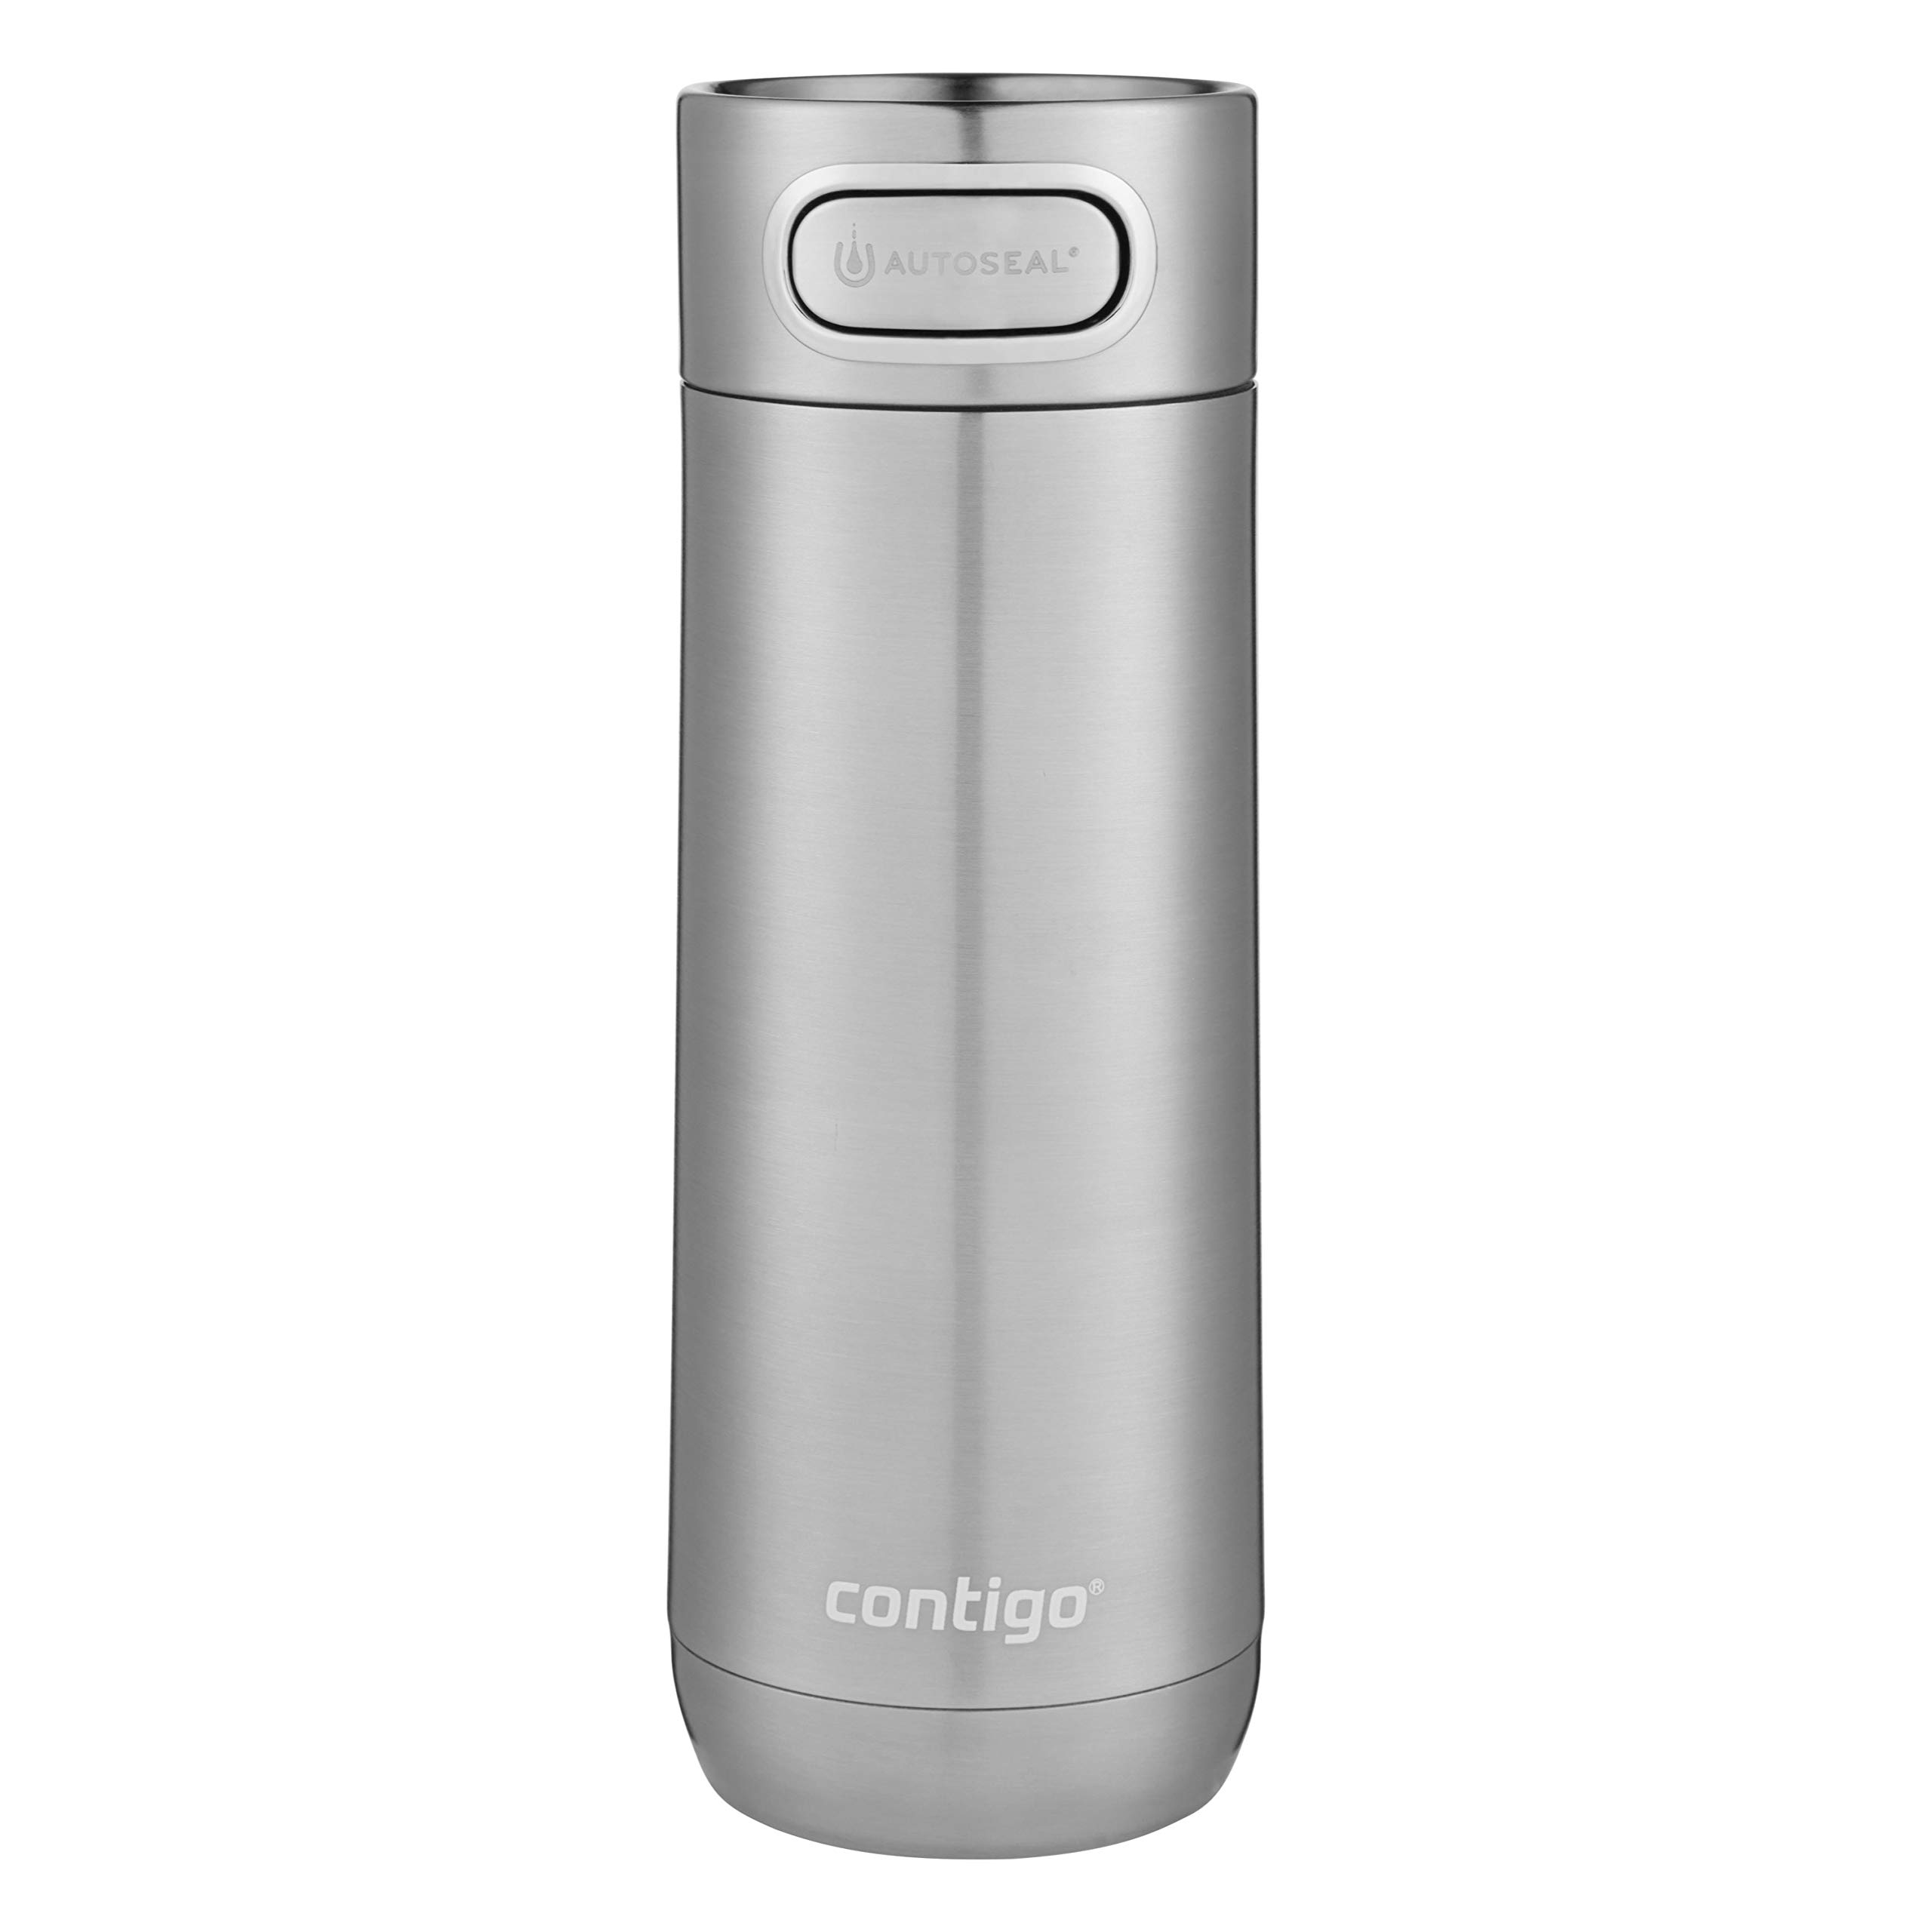 Contigo Luxe AUTOSEAL Vacuum-Insulated Travel Mug | Spill-Proof Coffee Mug with Stainless Steel THERMALOCK Double-Wall Insulation, 16 oz., Stainless Steel by Contigo